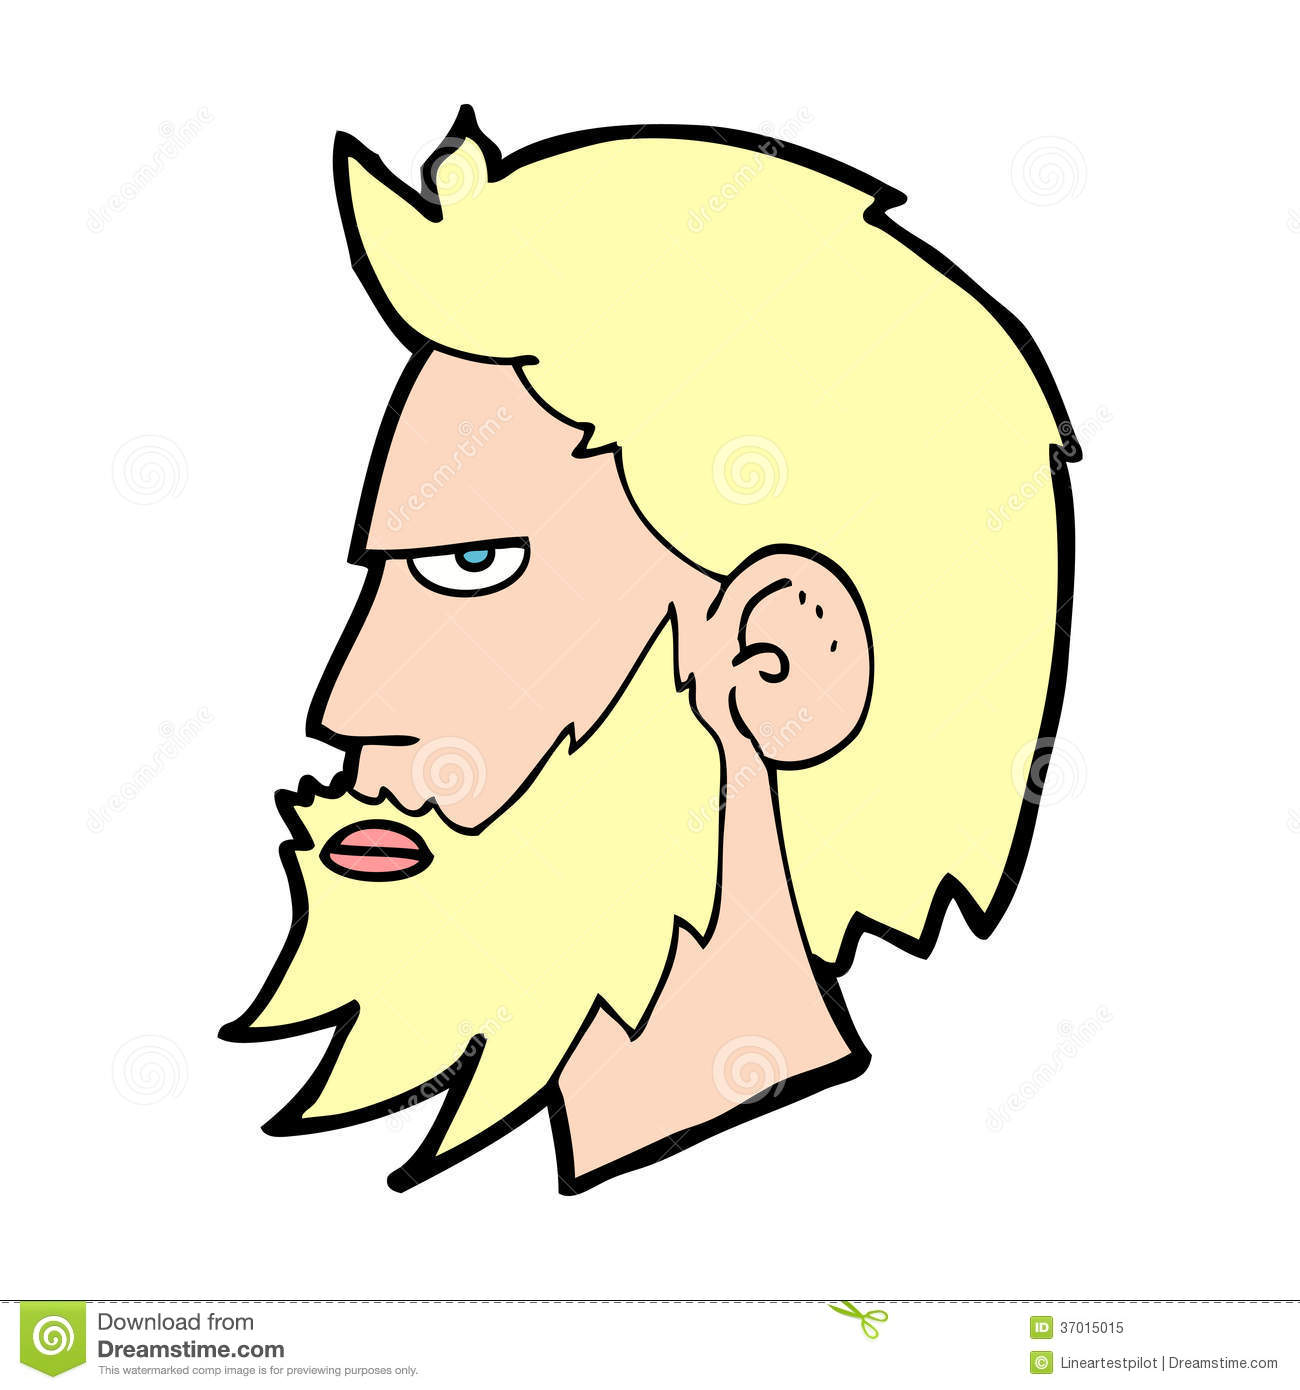 Cartoon Old Man with Beard